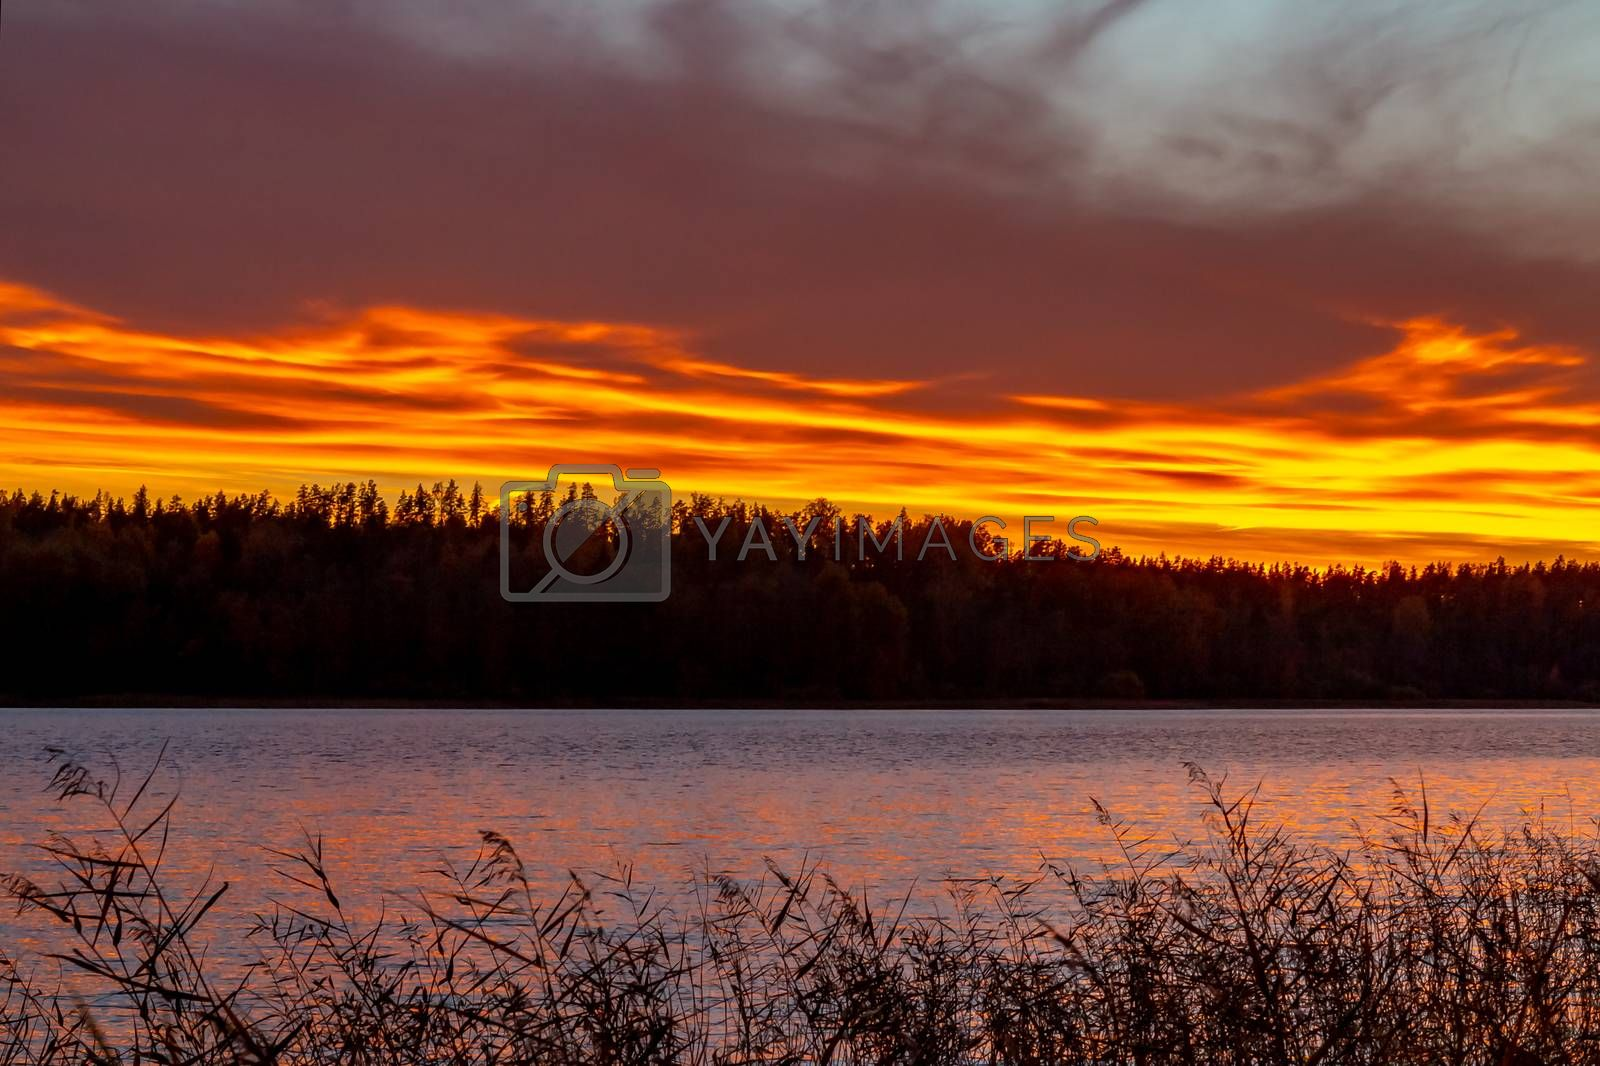 Beautiful sunset on the lake in the autumn evening - Image by galsand